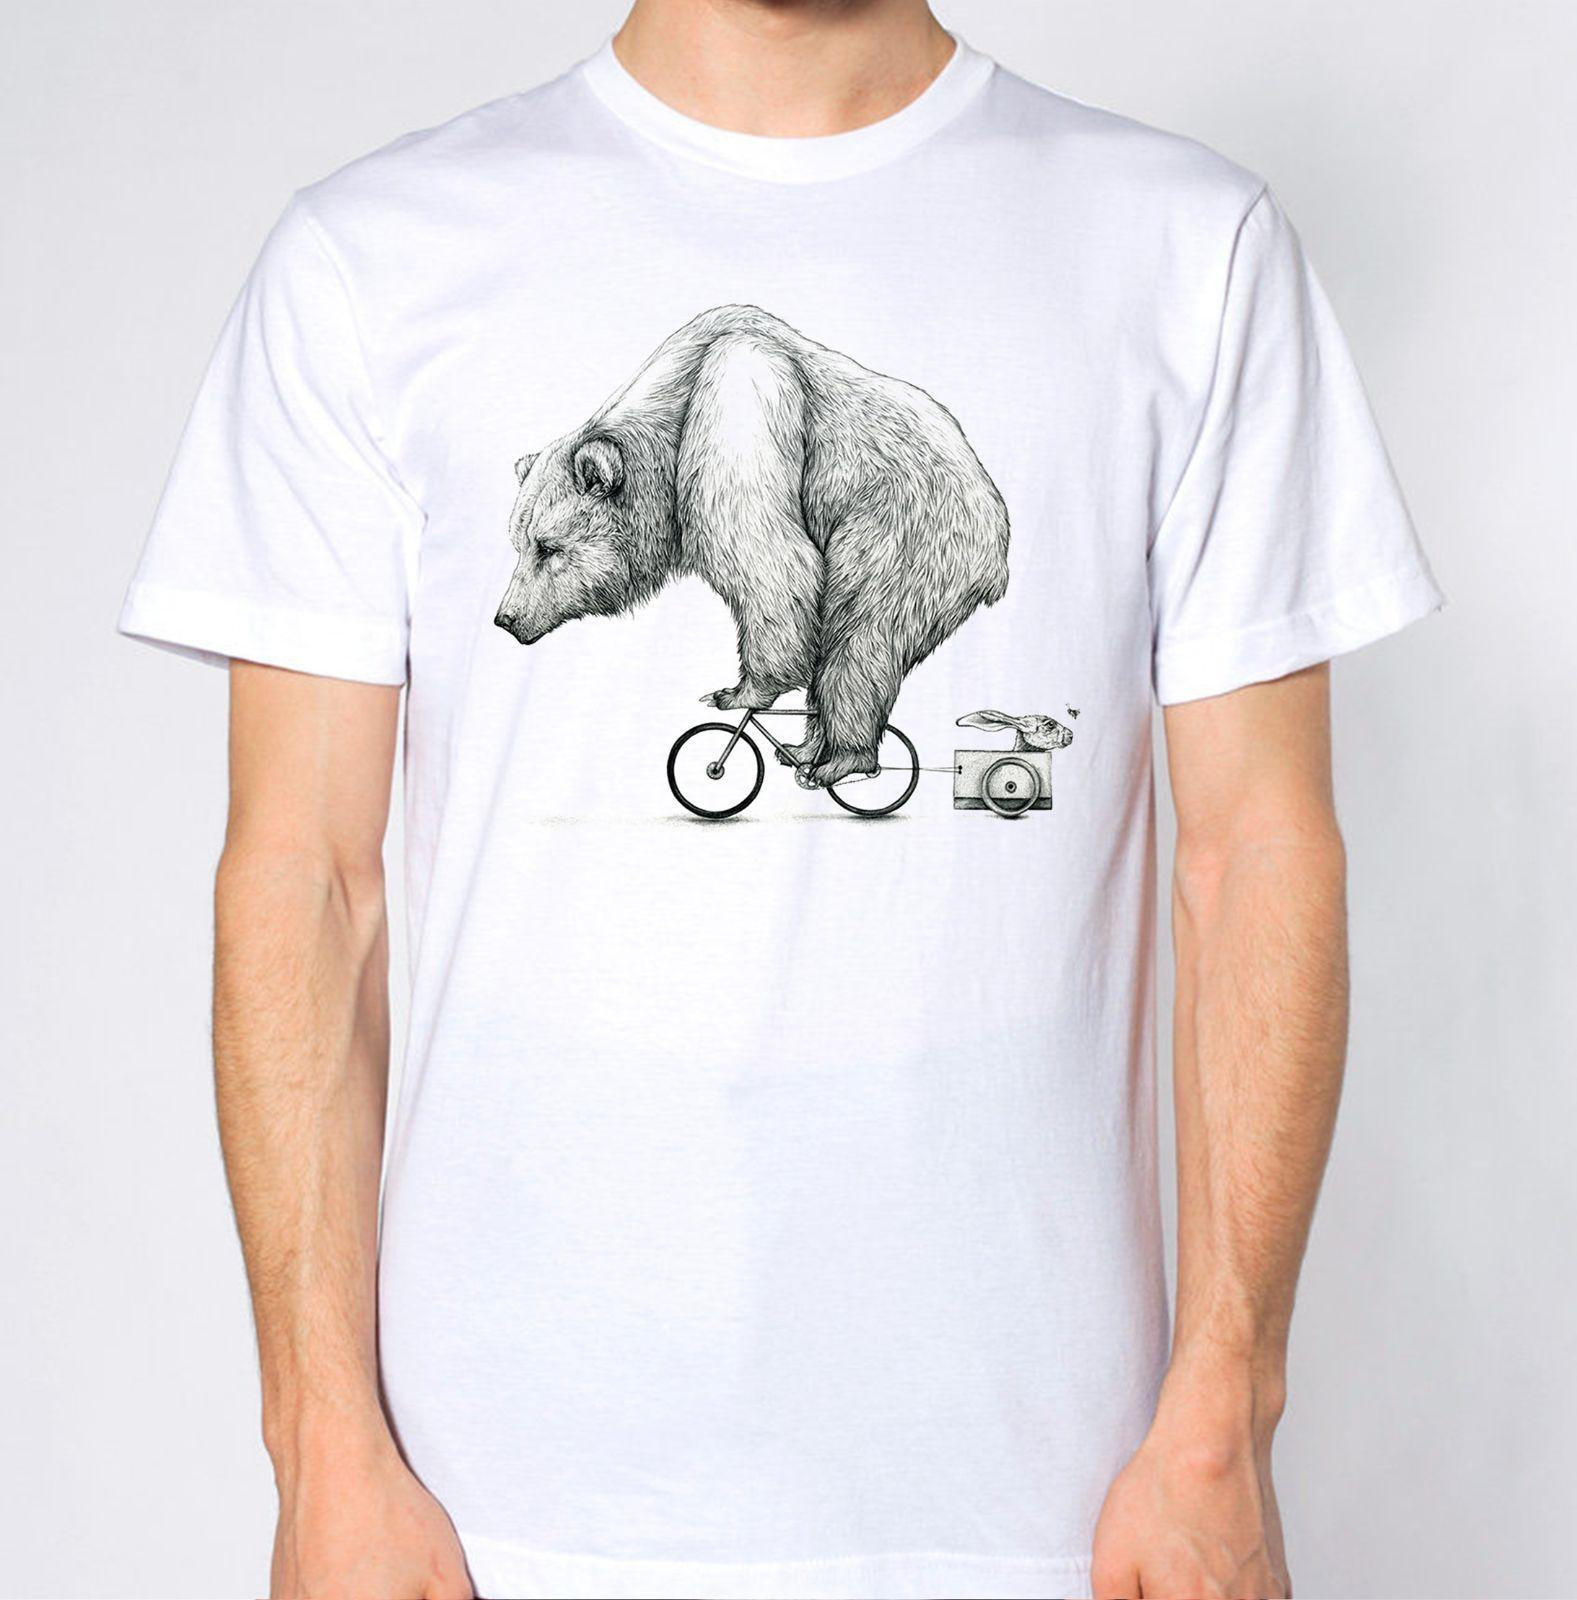 Bear Riding a Bike New T-Shirt Funny Animal Lover Tee Cute Top Graphic Divertente spedizione gratuita Unisex Casual